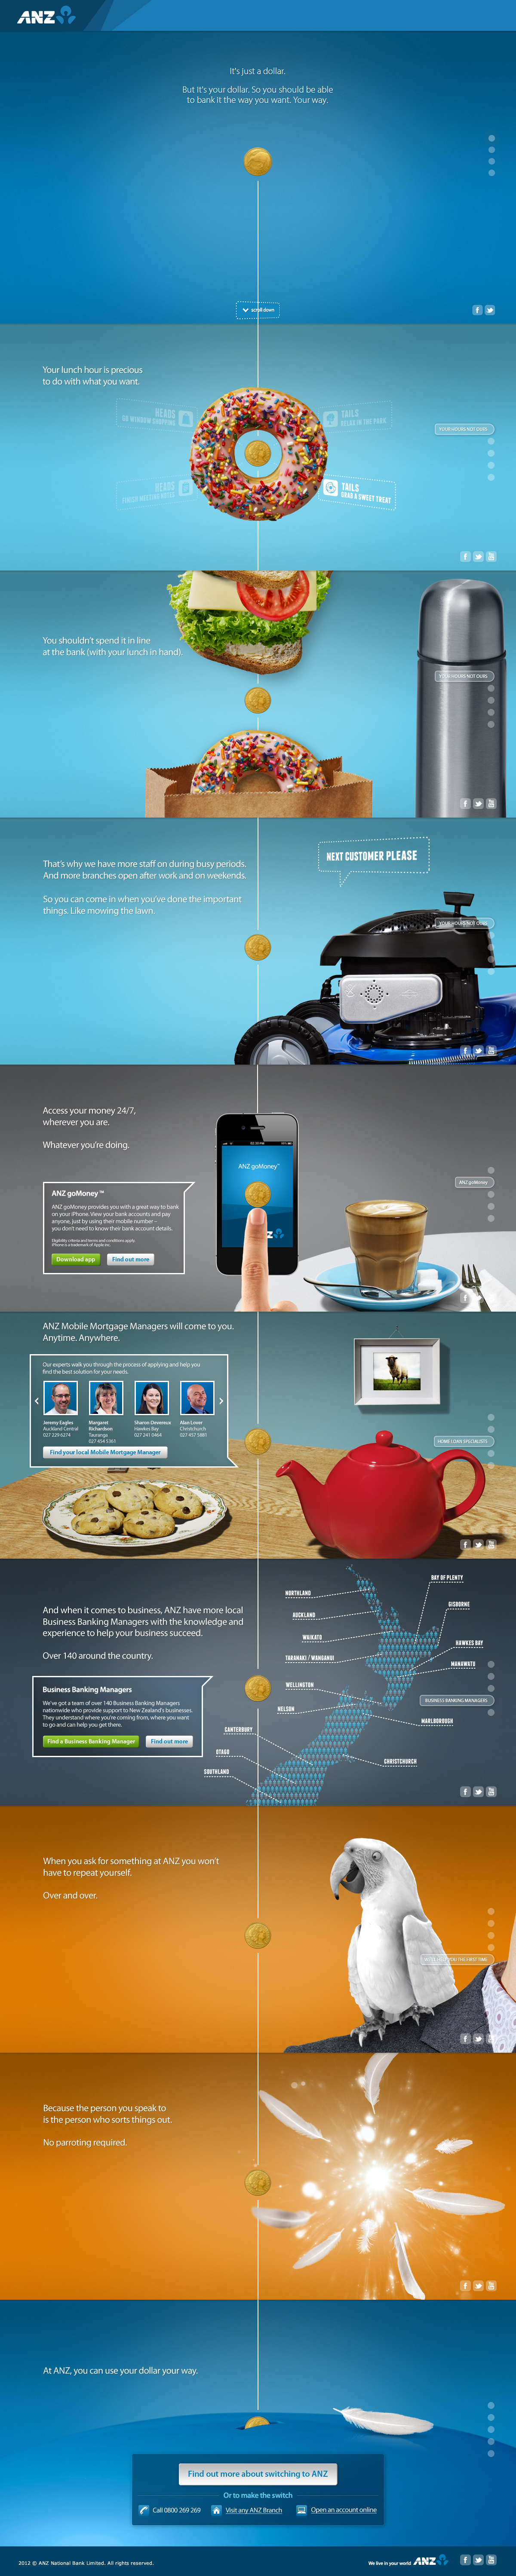 anz-yourway-full.png